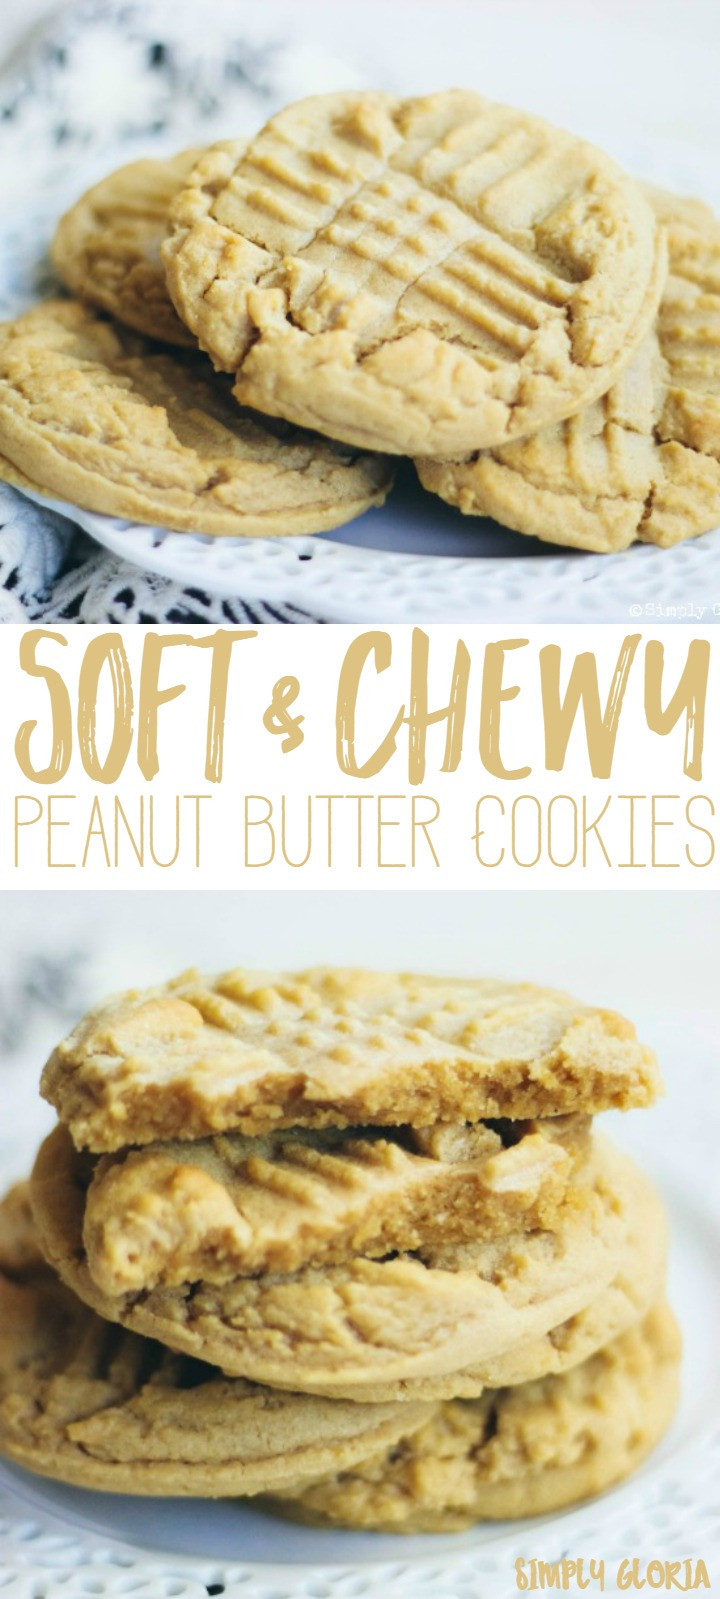 Soft Chewy Peanut Butter Cookies  Soft and Chewy Peanut Butter Cookies Simply Gloria